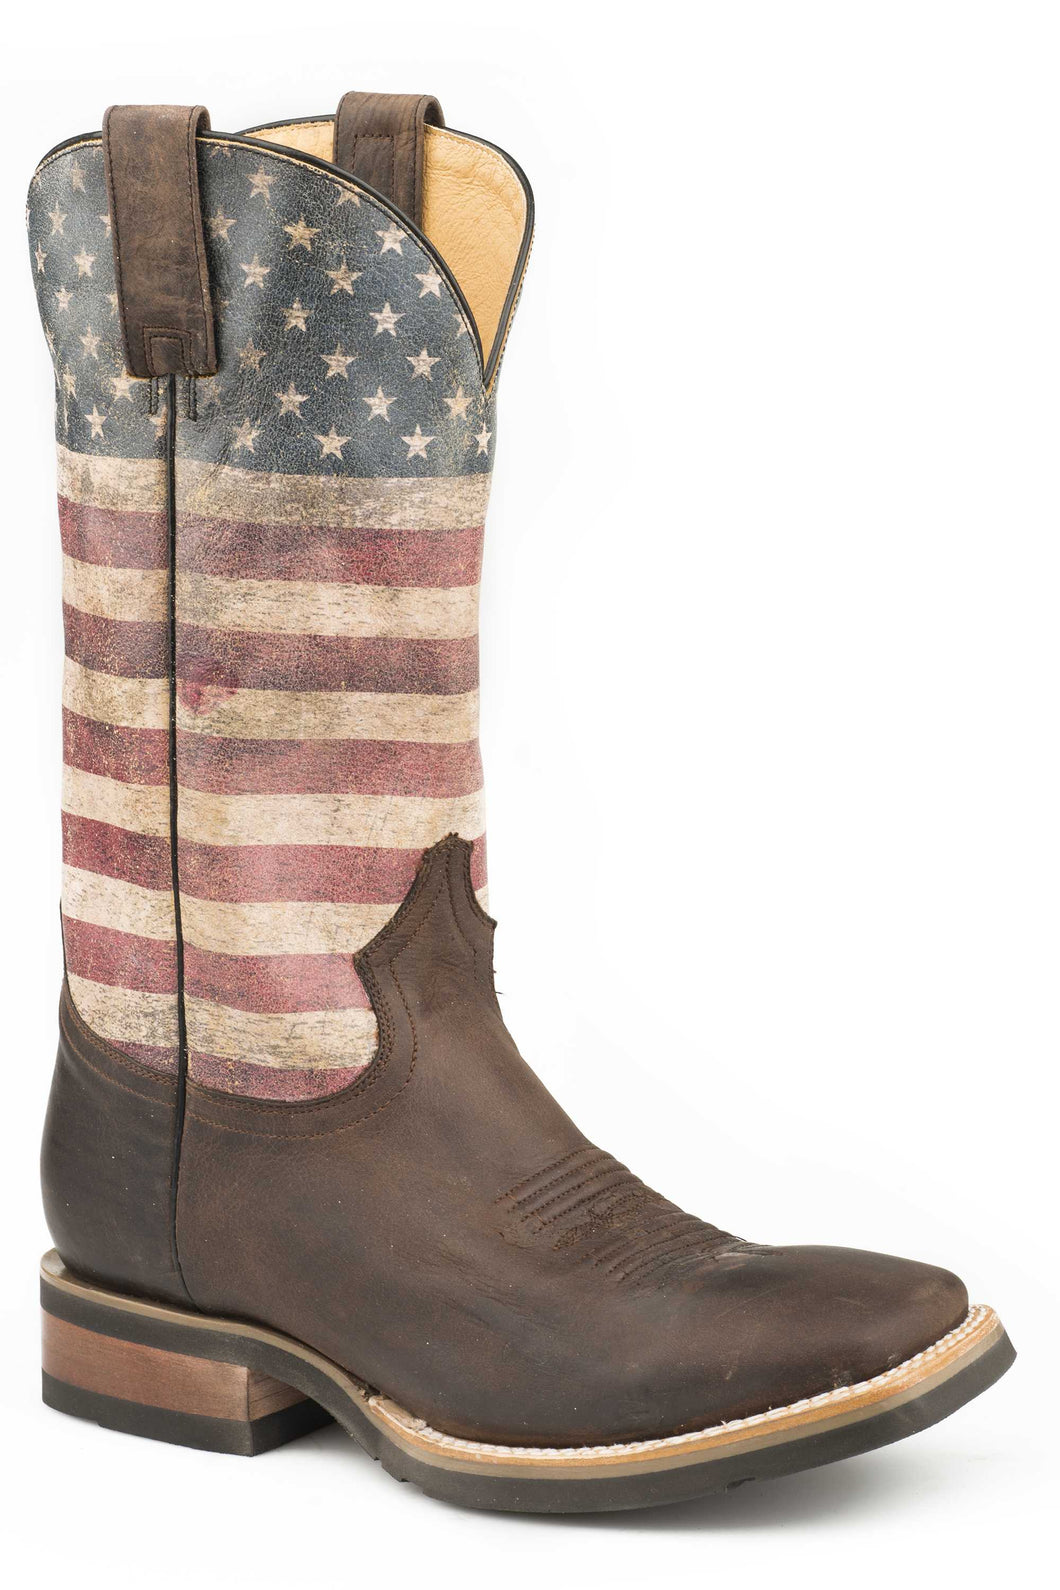 American Patriot Americana Mens Boots Oiled Brown Leather Vamp